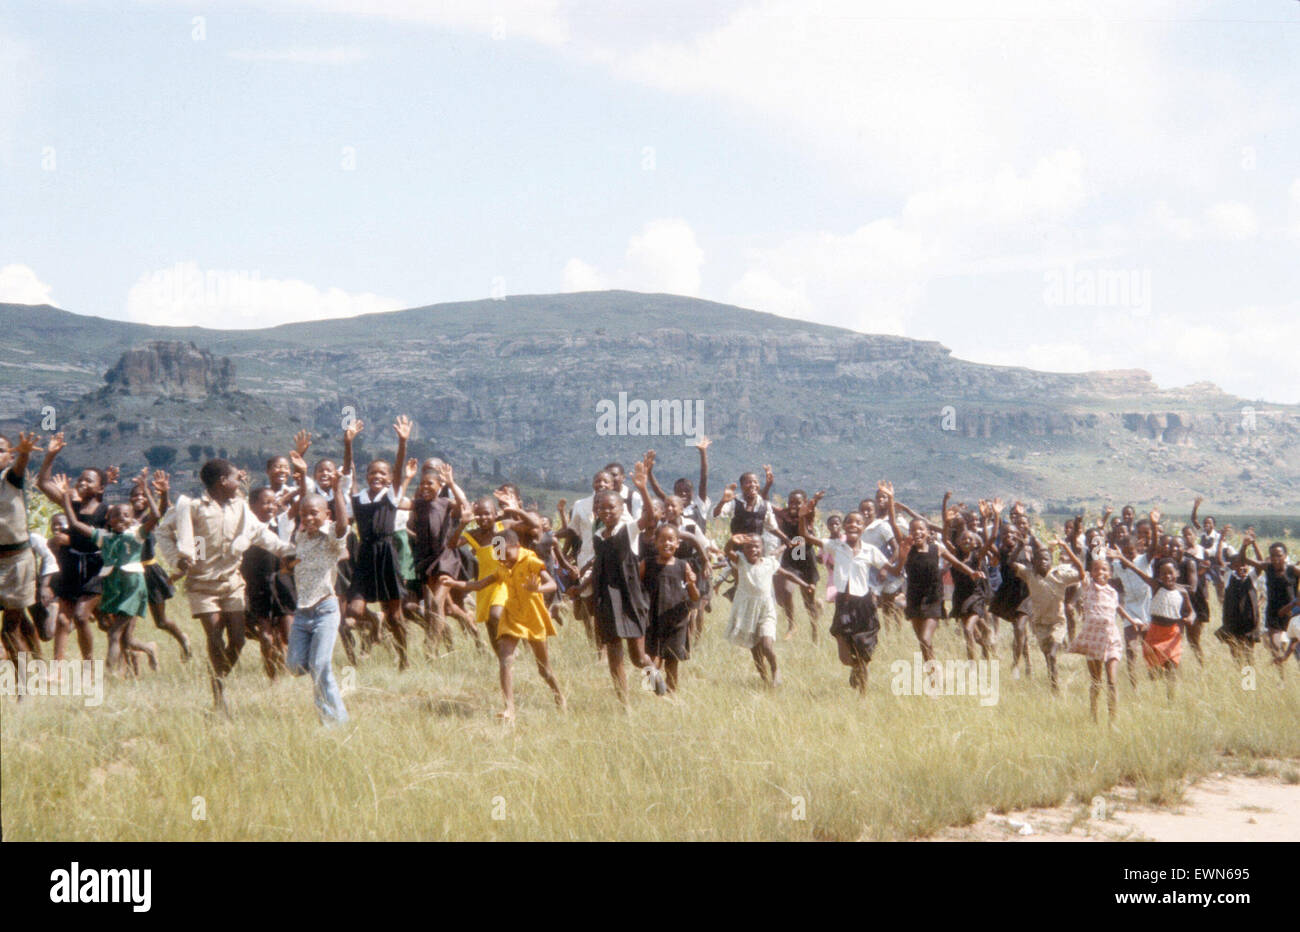 LESOTHO SCHOOL CHILDREN RUNNING - Stock Image